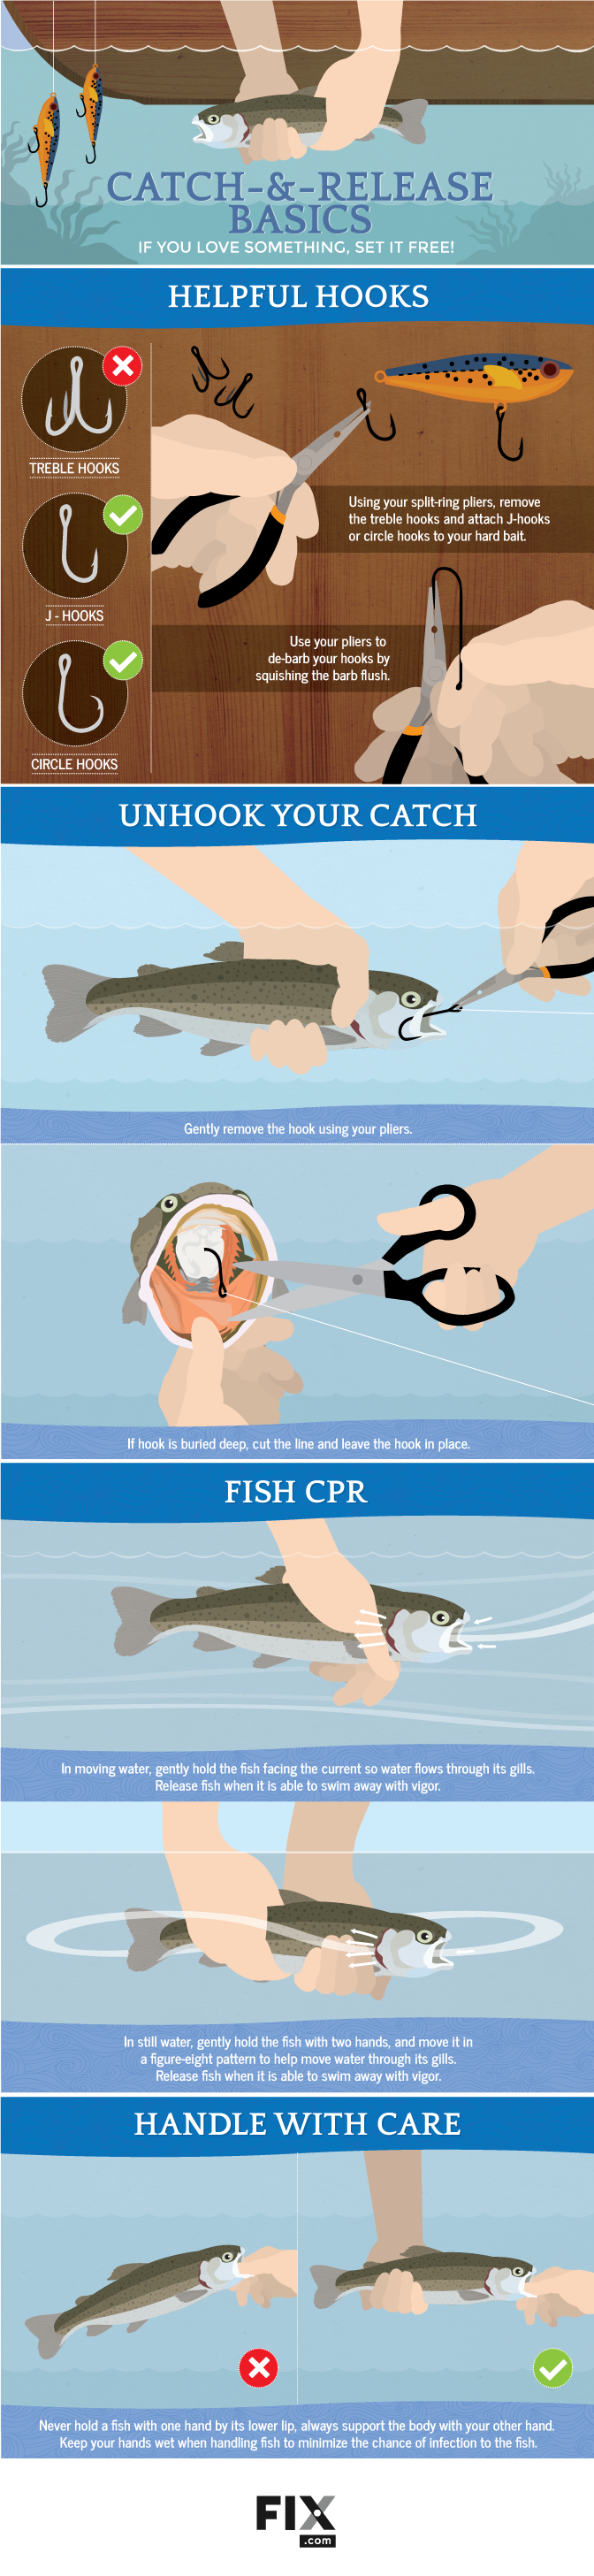 Guide to Catch-and-Release Fishing If You Love Something, Set it Free! #infographic